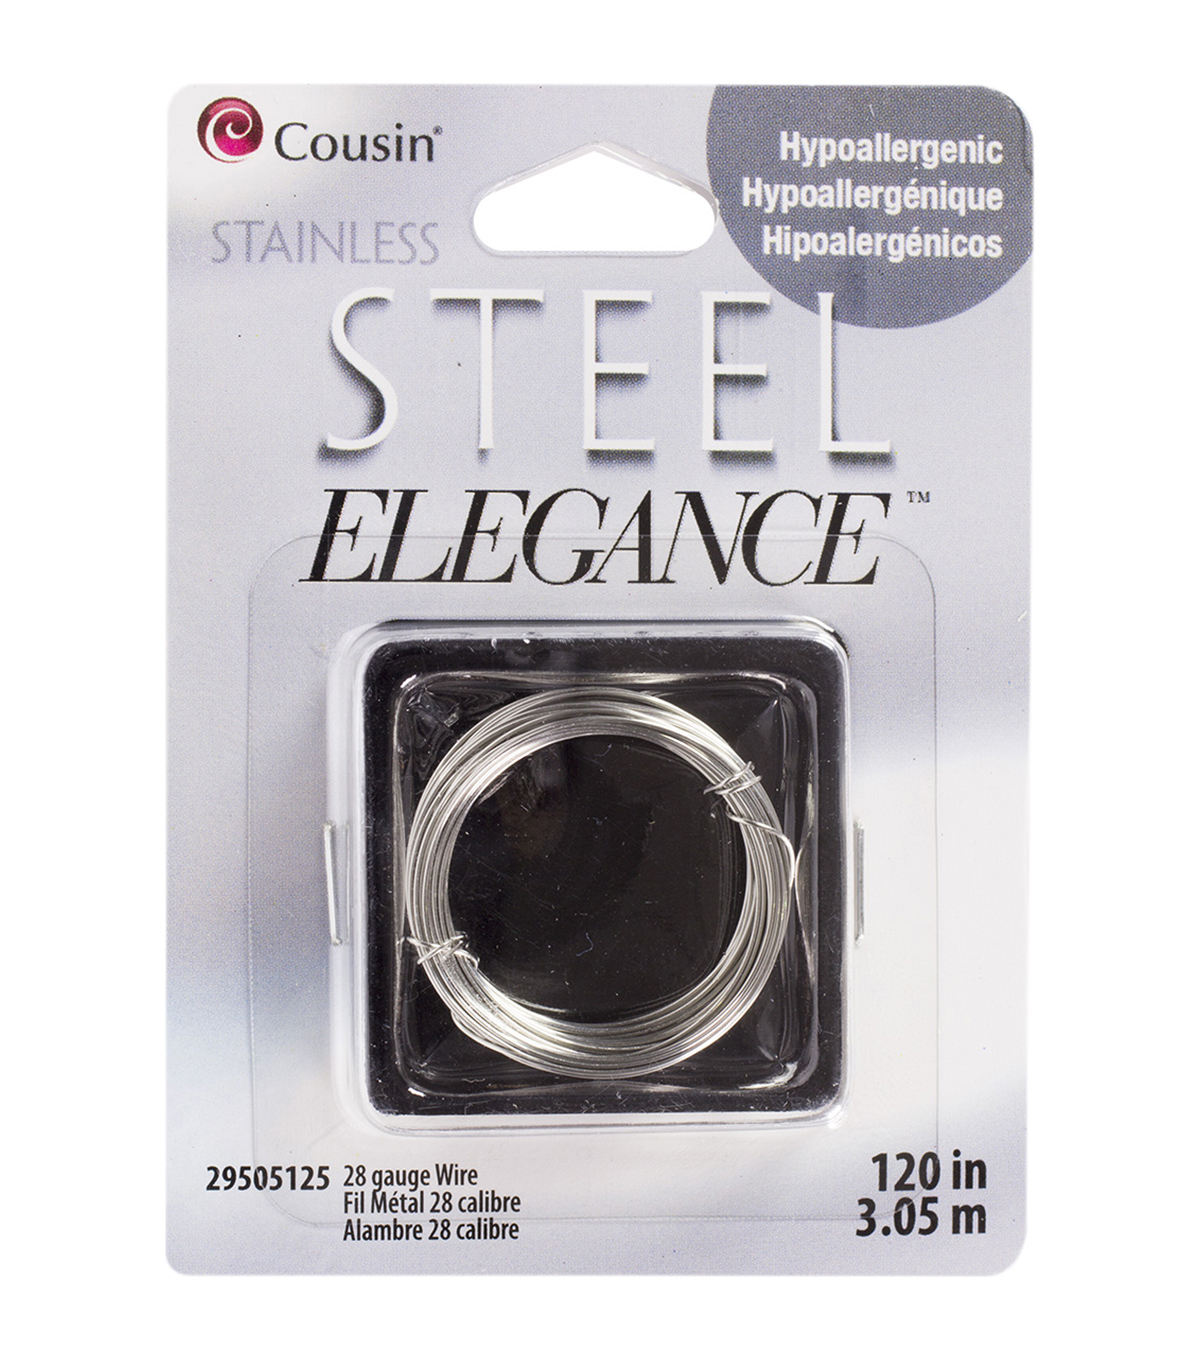 Cousin Corporation Stainless Steel Elegance Wire